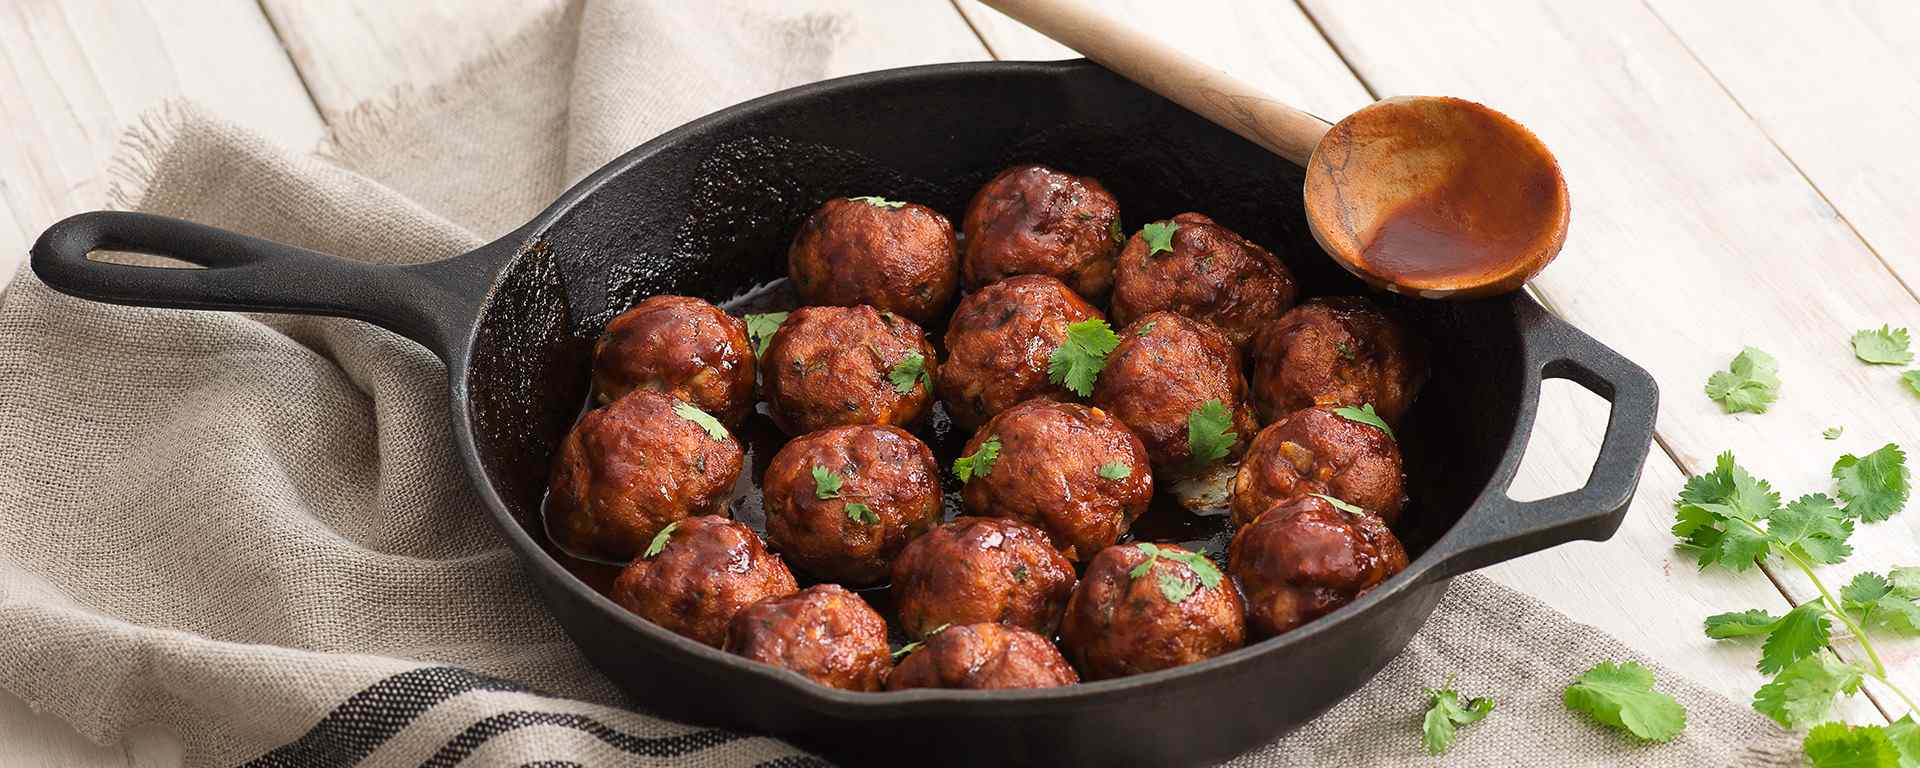 Photo for - Cheddar-Stuffed Meatballs with Sriracha Glaze